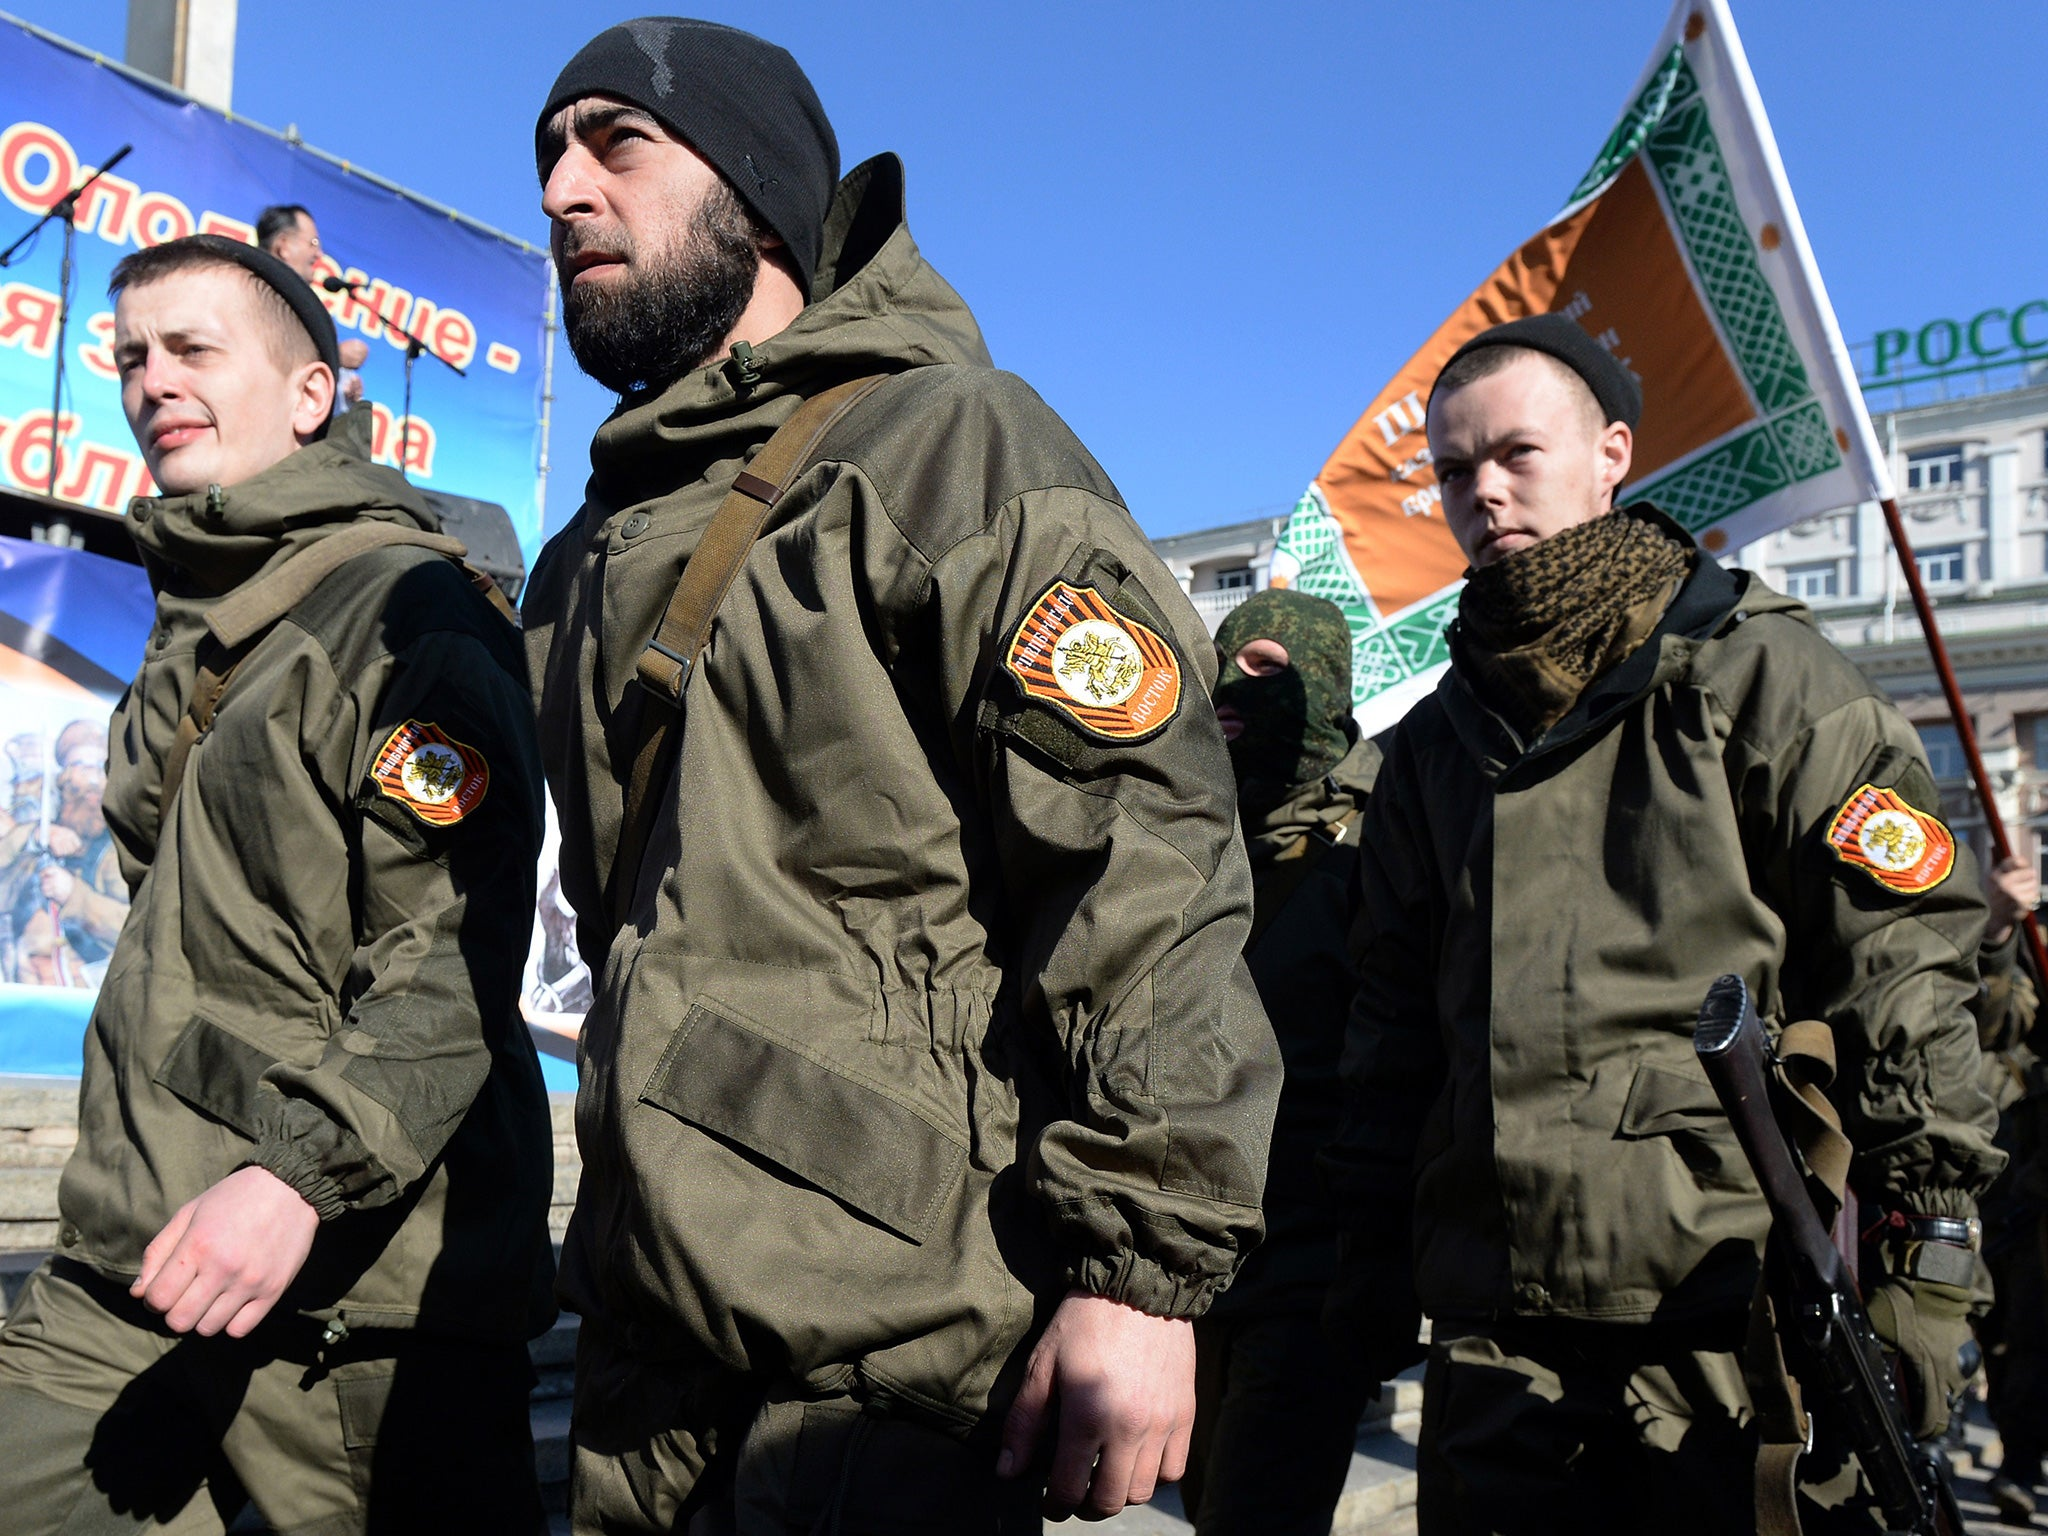 Ukraine unrest as Separatists feel betrayed by new political masters